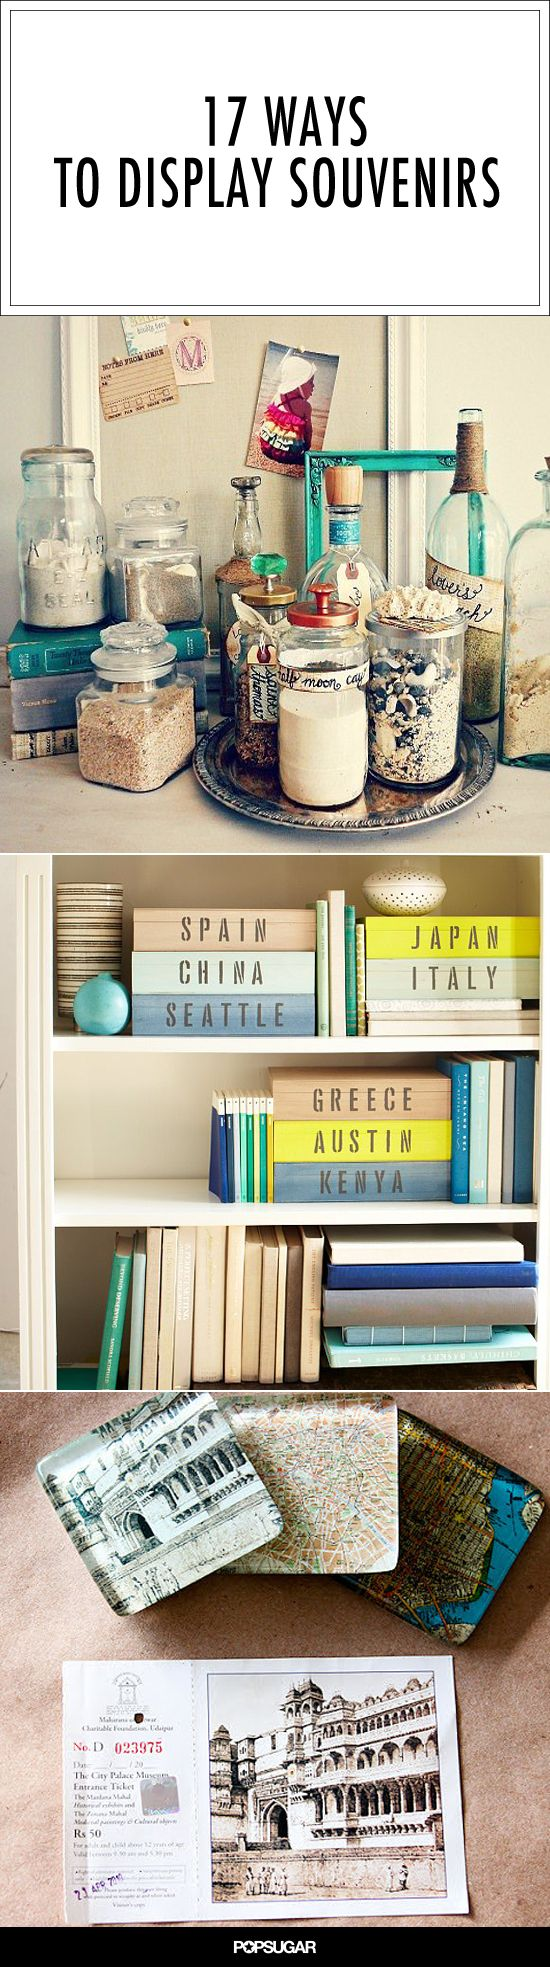 17 Ideas to Organize and Display Travel Mementos With Style (do them for Atlantic Highlands, Cape Cod, Savannah, Seattle)